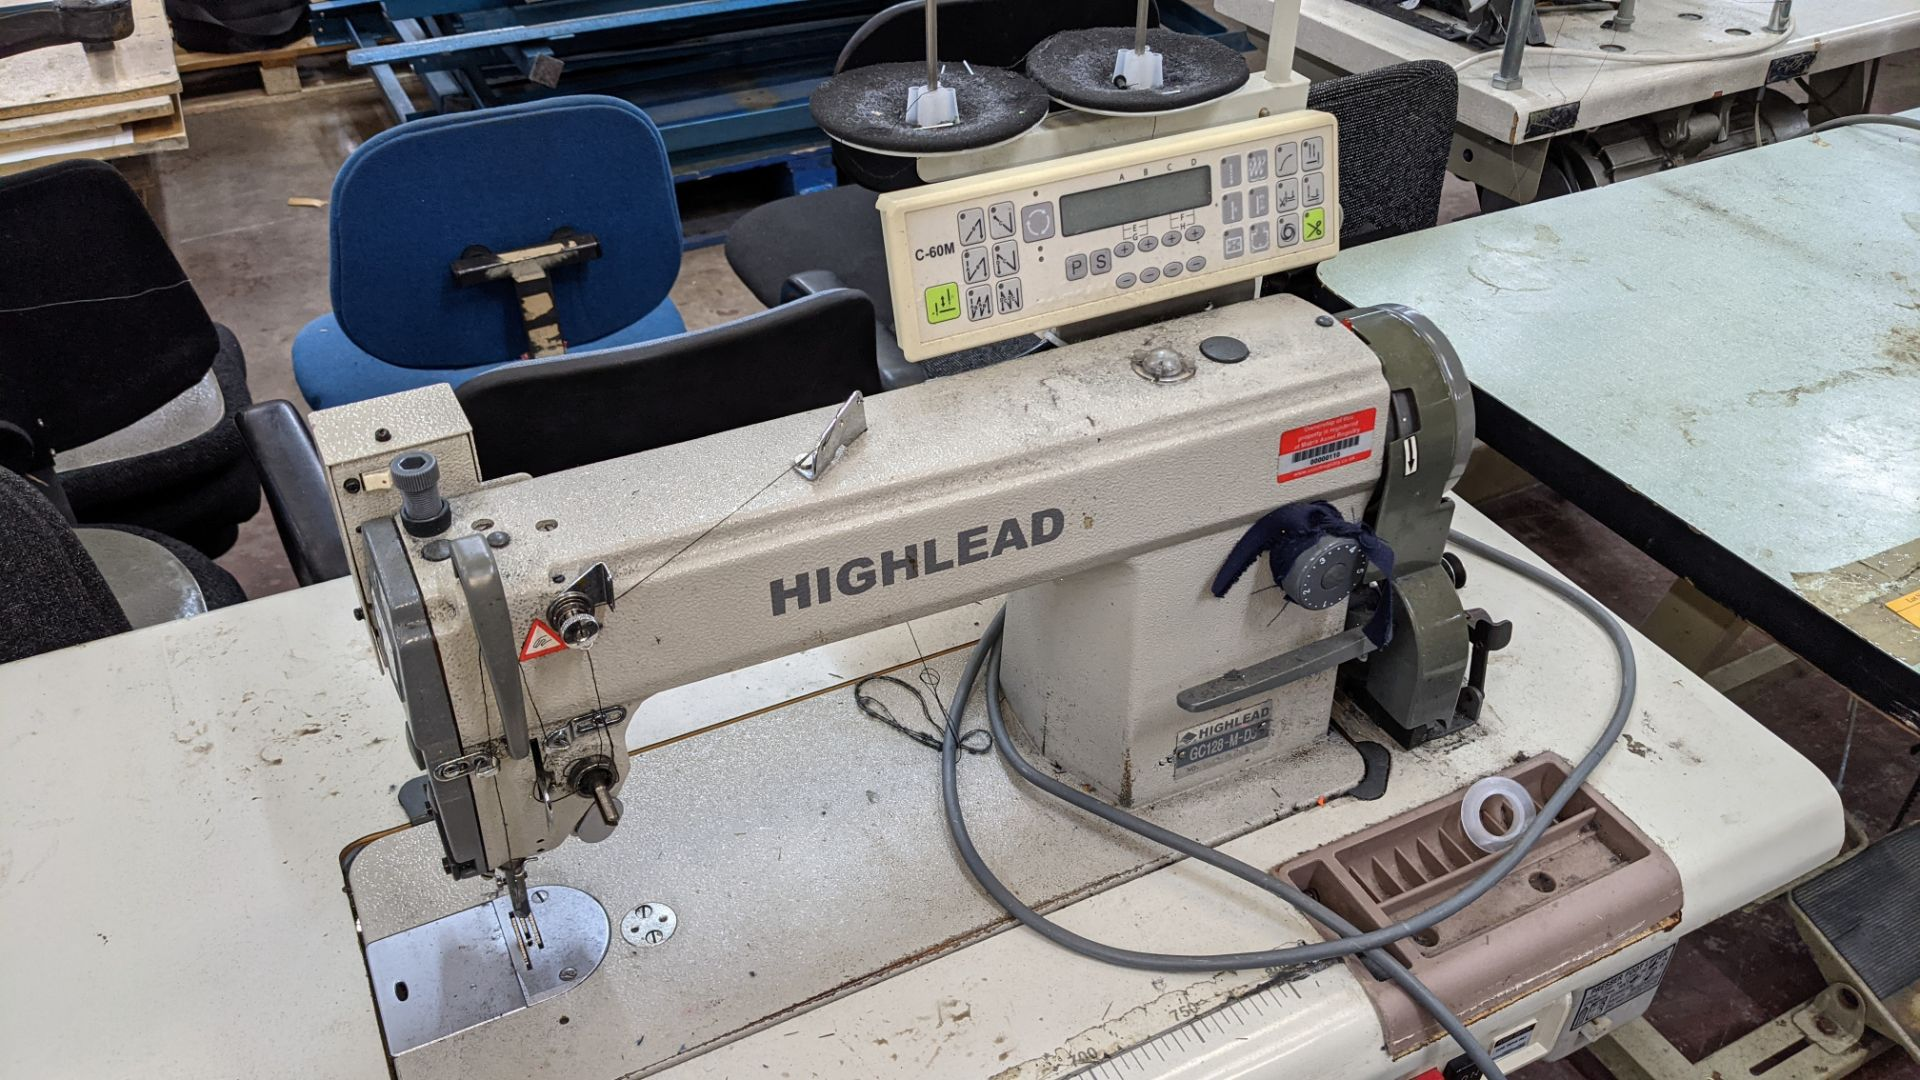 Highlead model GC128-M-D3 sewing machine with model C-60M digital controller - Image 6 of 14